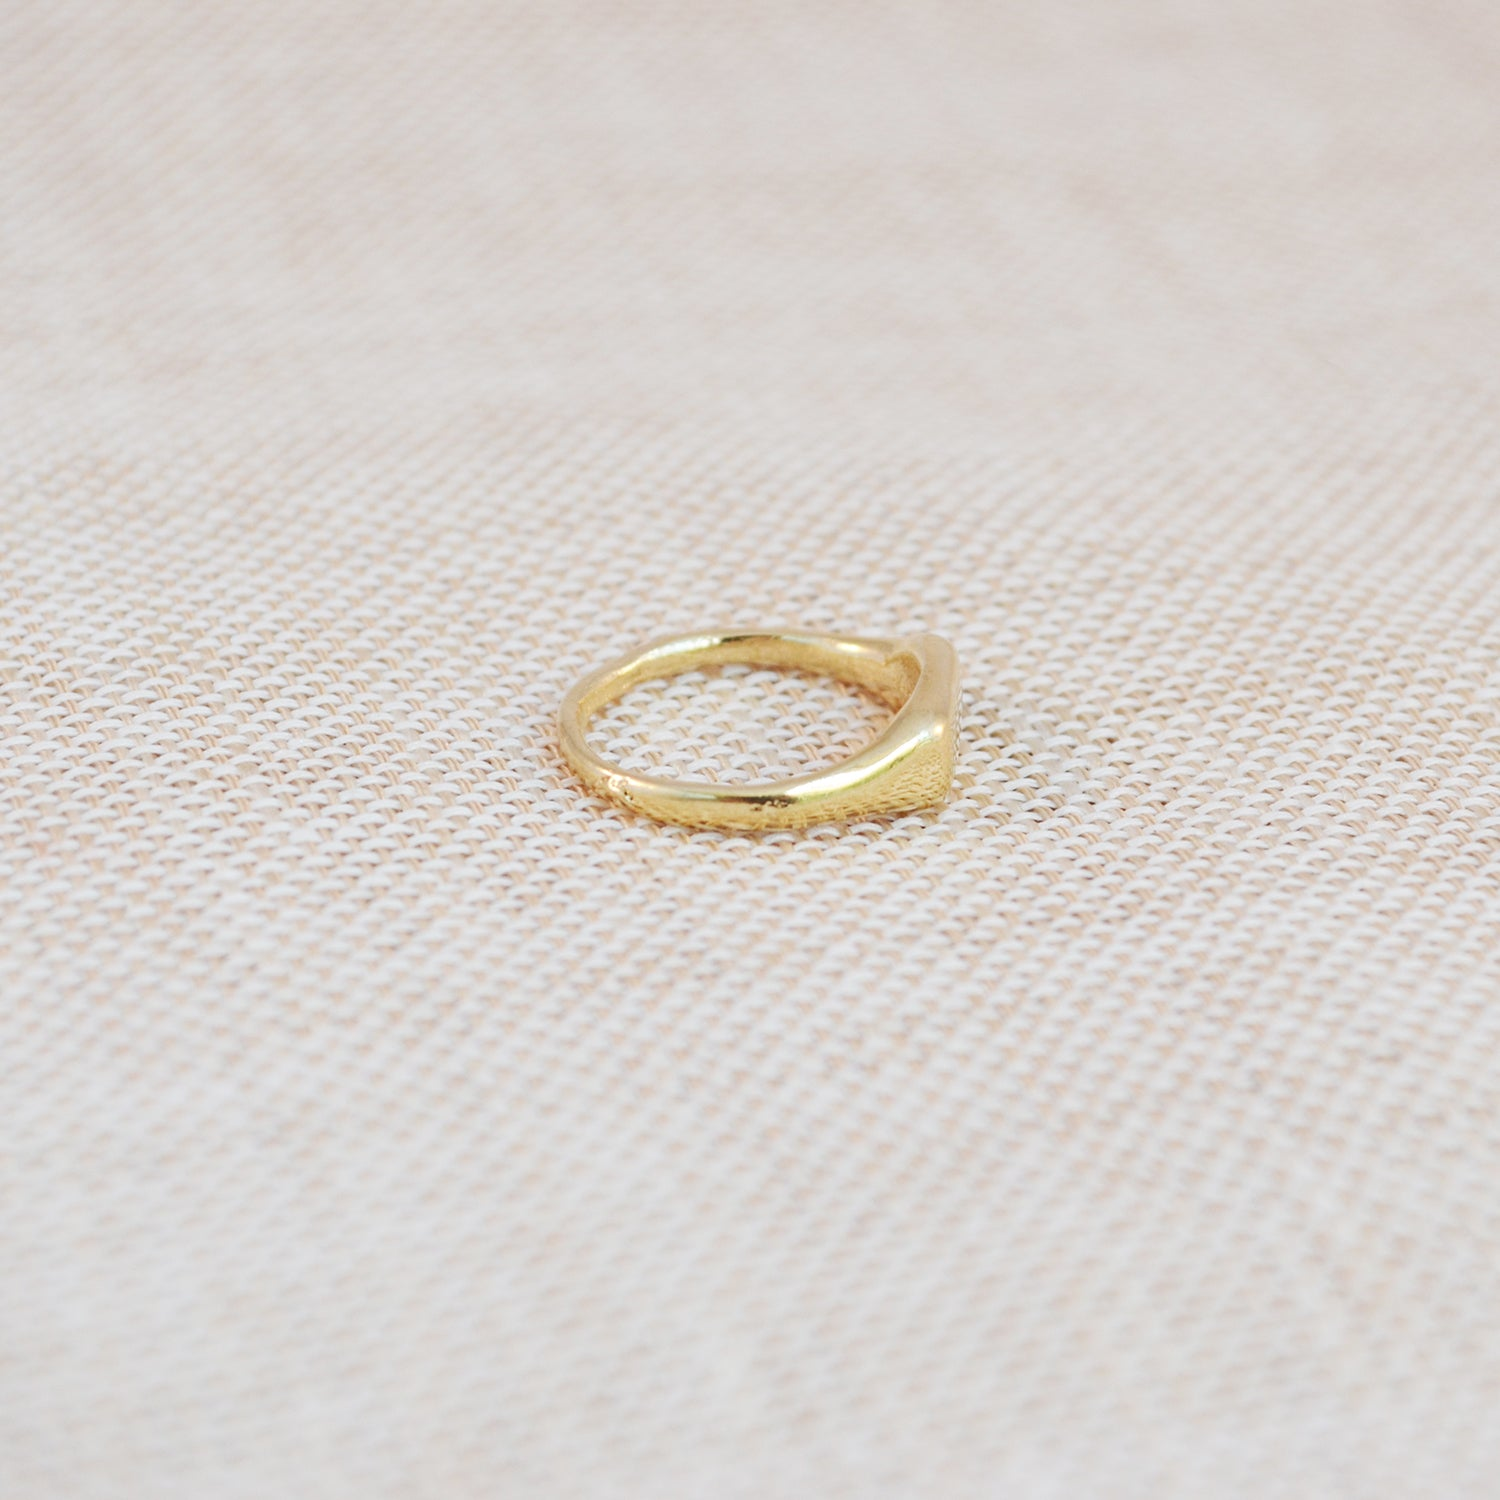 Signet Ring - 14k Gold